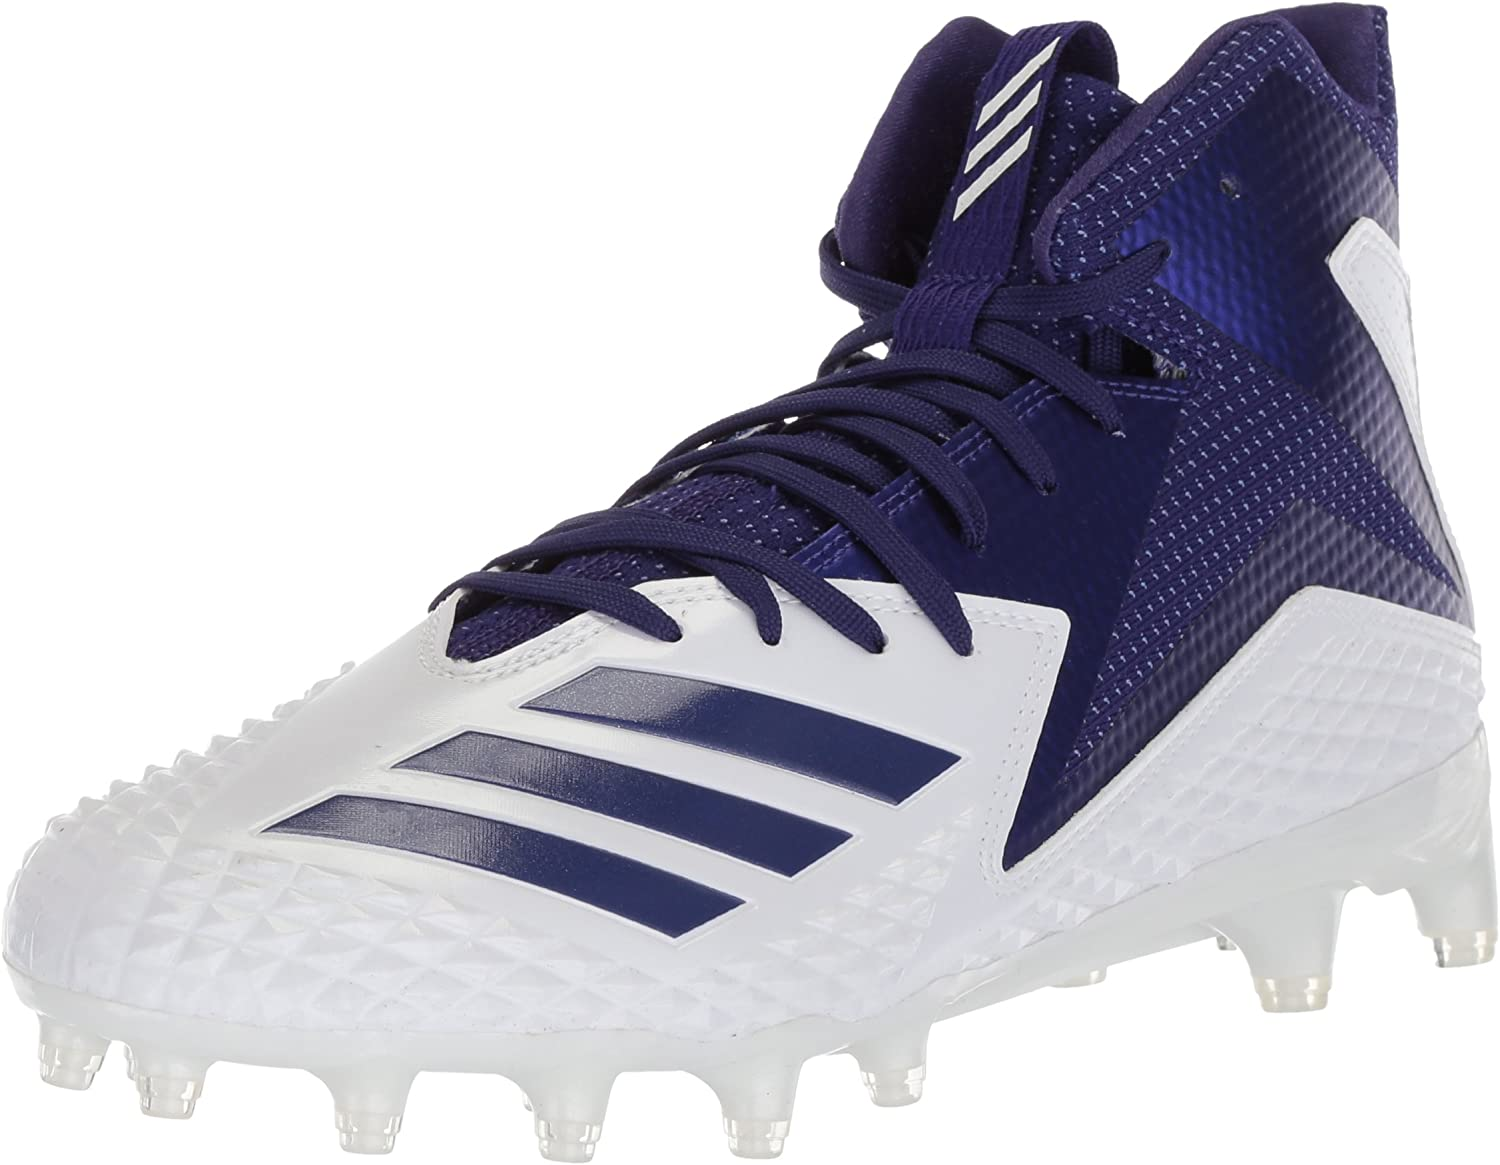 Adidas Men's Freak X Carbon Mid Football shoes, White Collegiate Purple, 12.5 M US